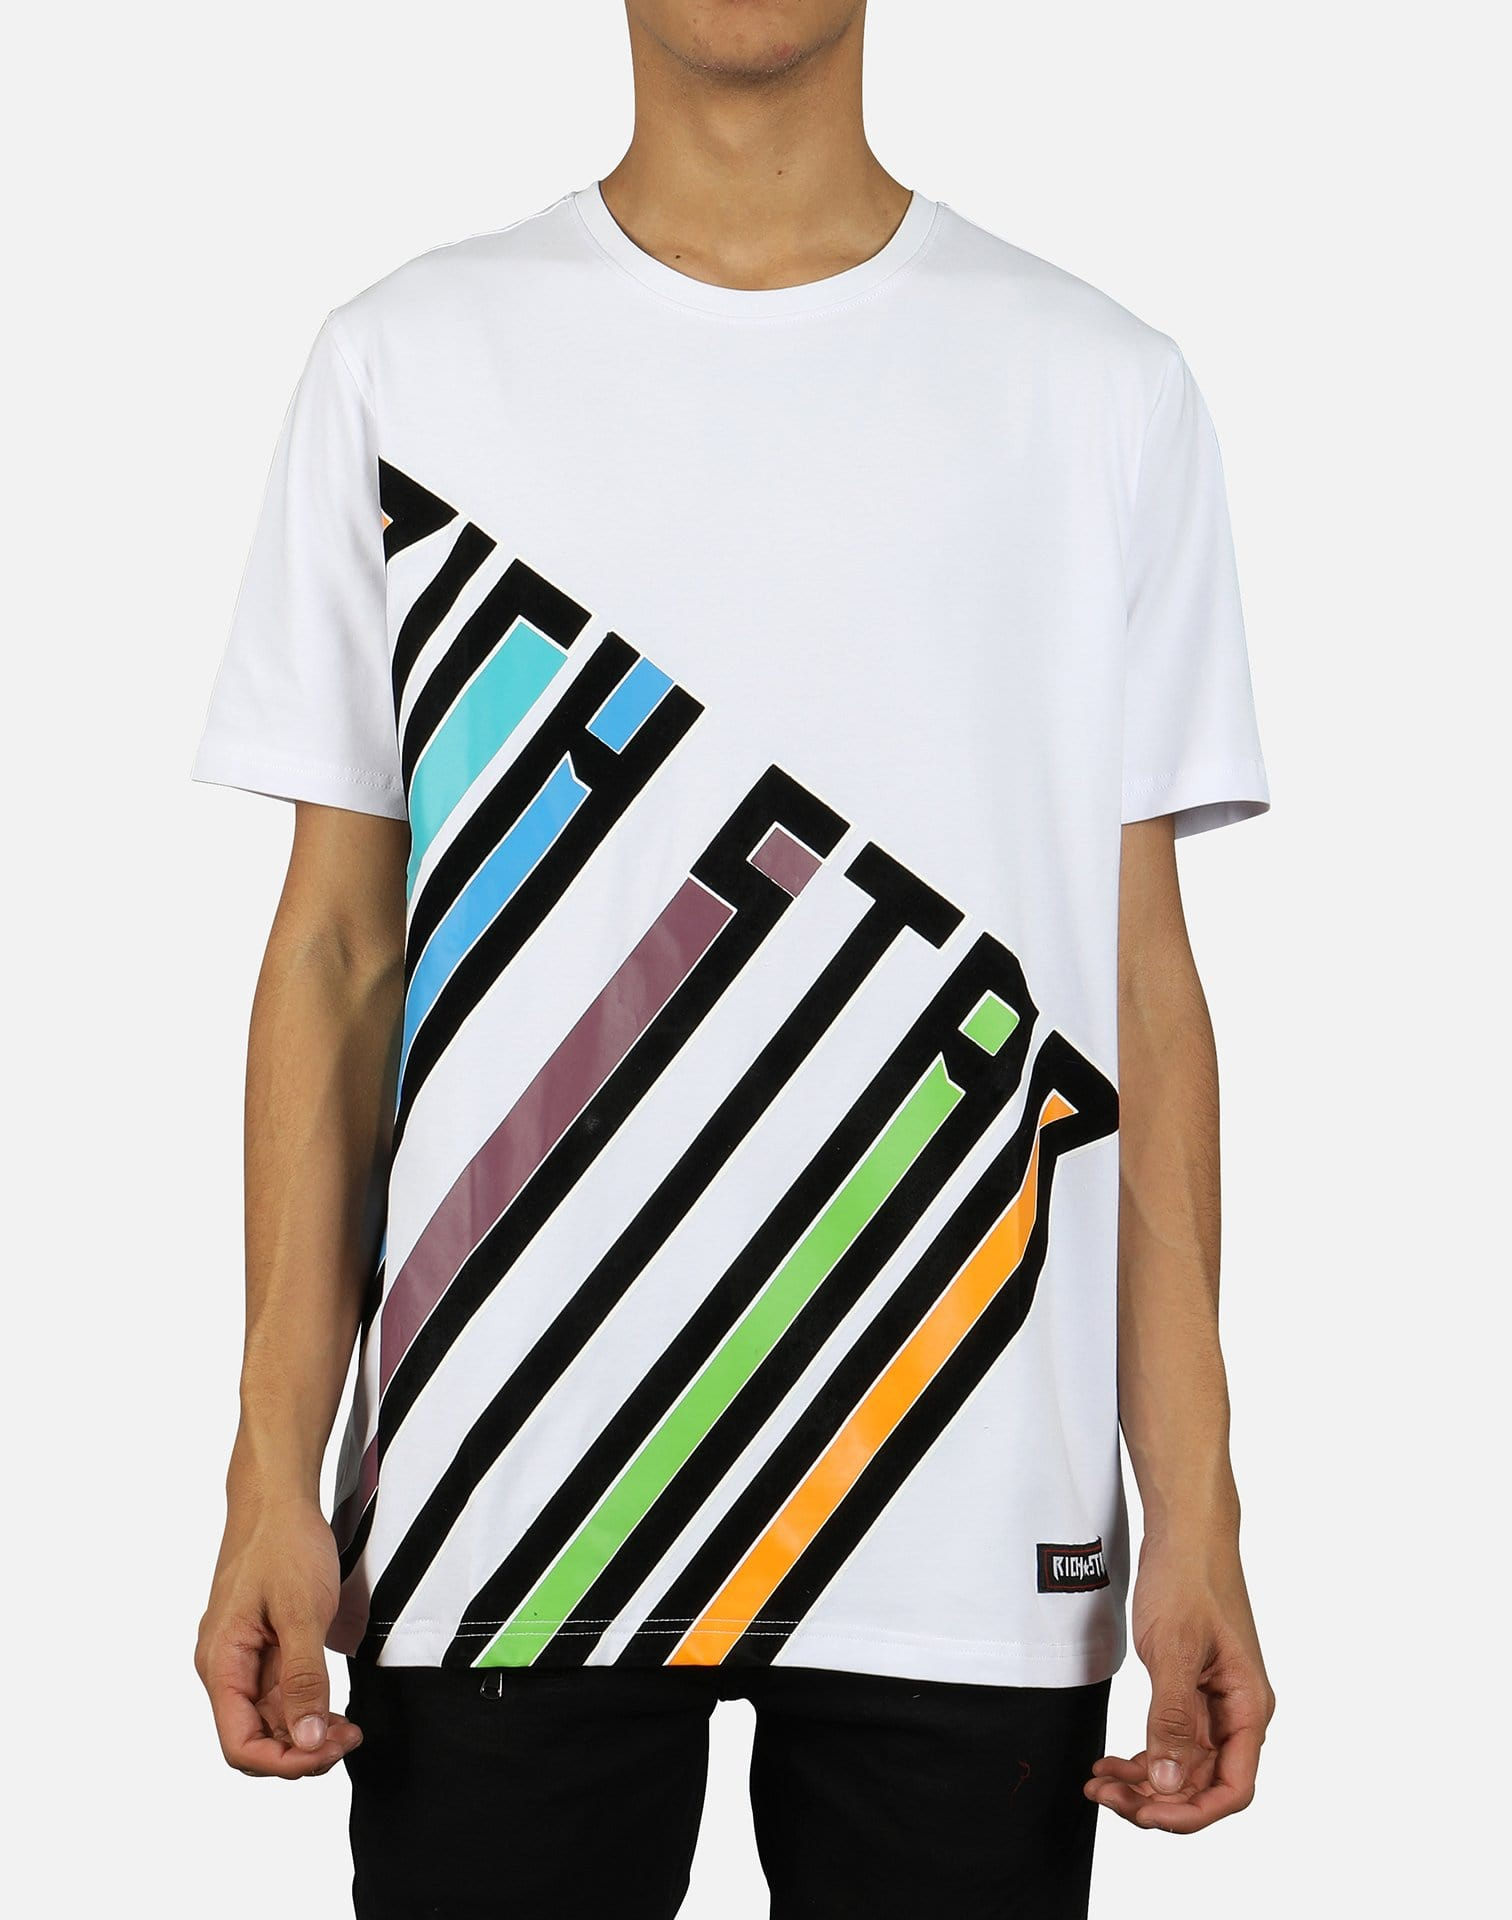 Rich Star Men's Colorful 'Rich Star' Tee